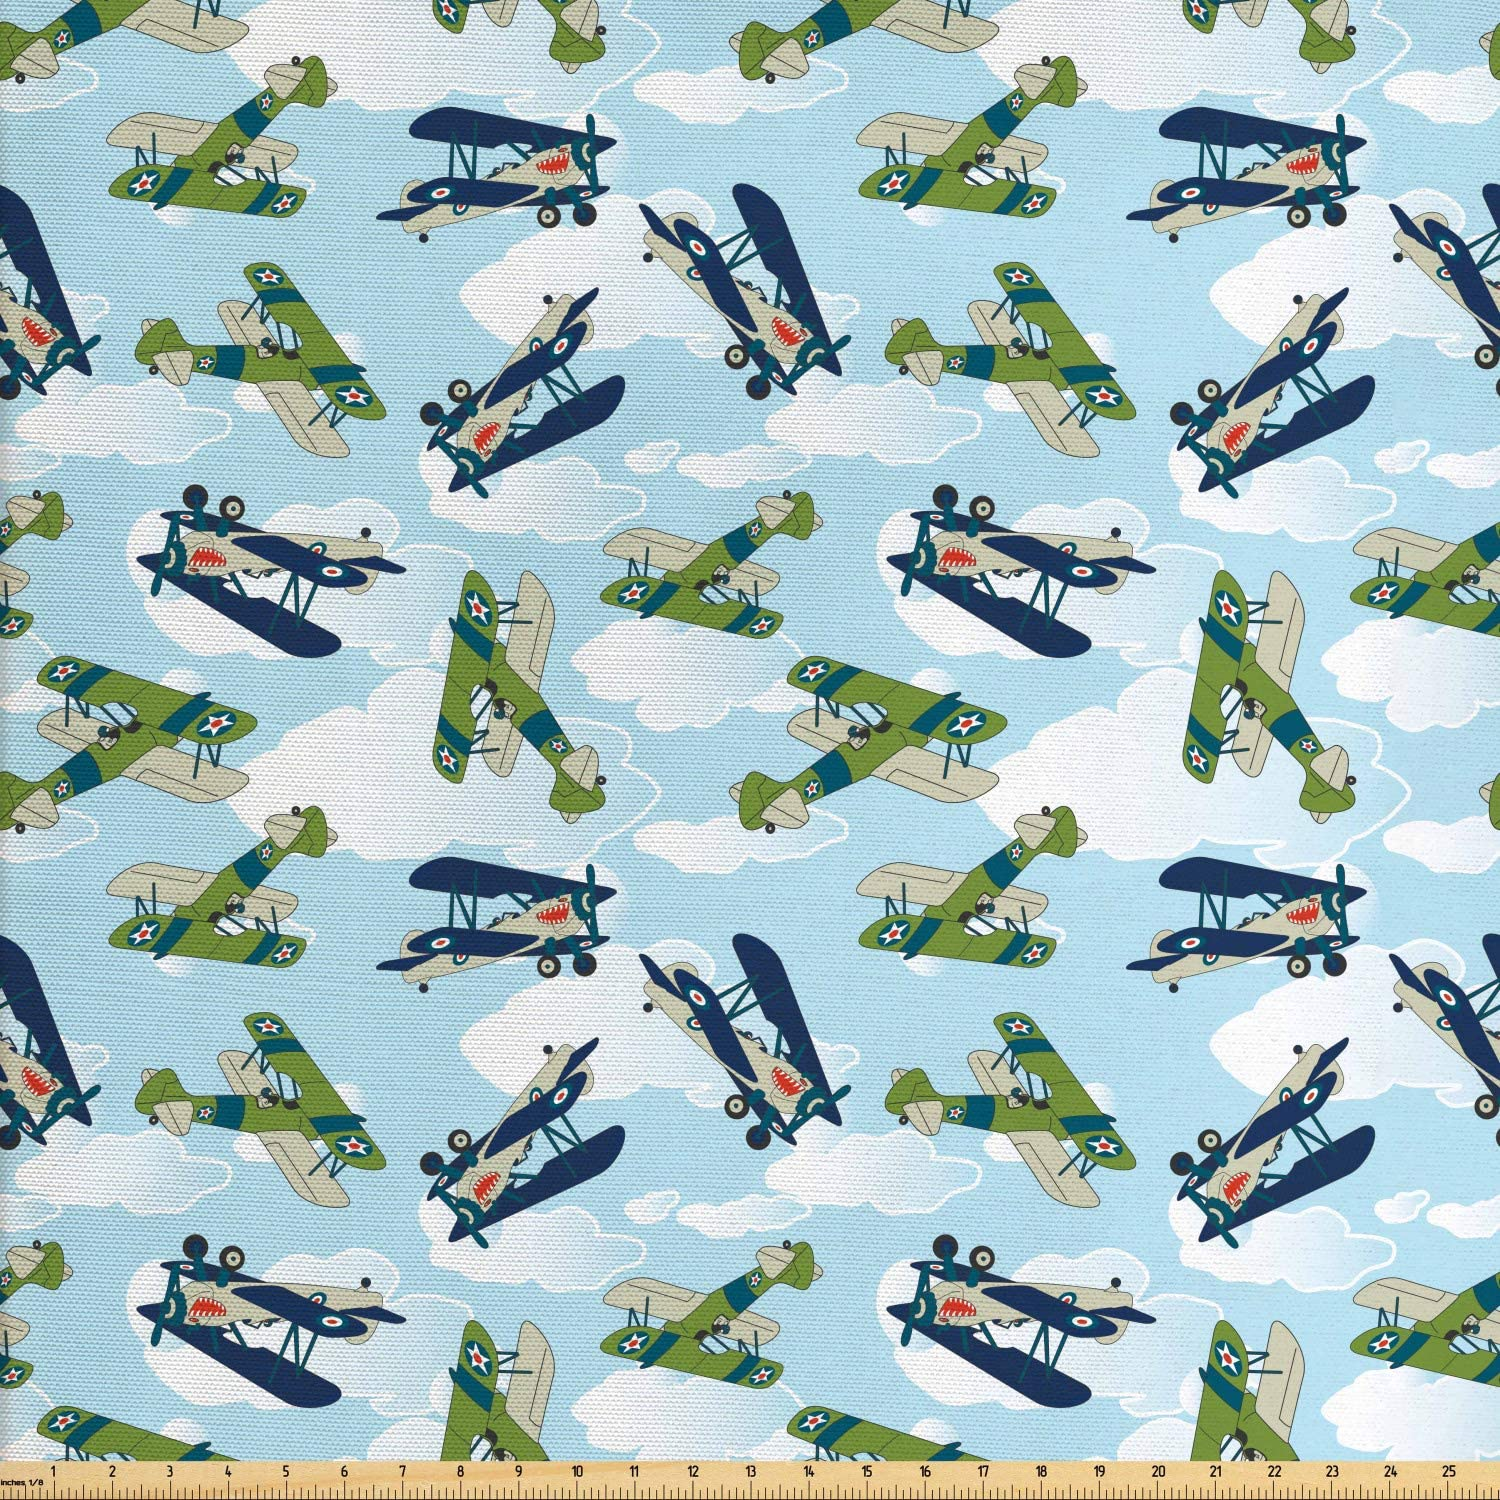 Lunarable Airplane Fabric by The Yard, Vintage Allied Plane Flying Pattern Cartoon Children Kids Shark Teeth, Decorative Fabric for Upholstery and Home Accents, 1 Yard, Olive Green